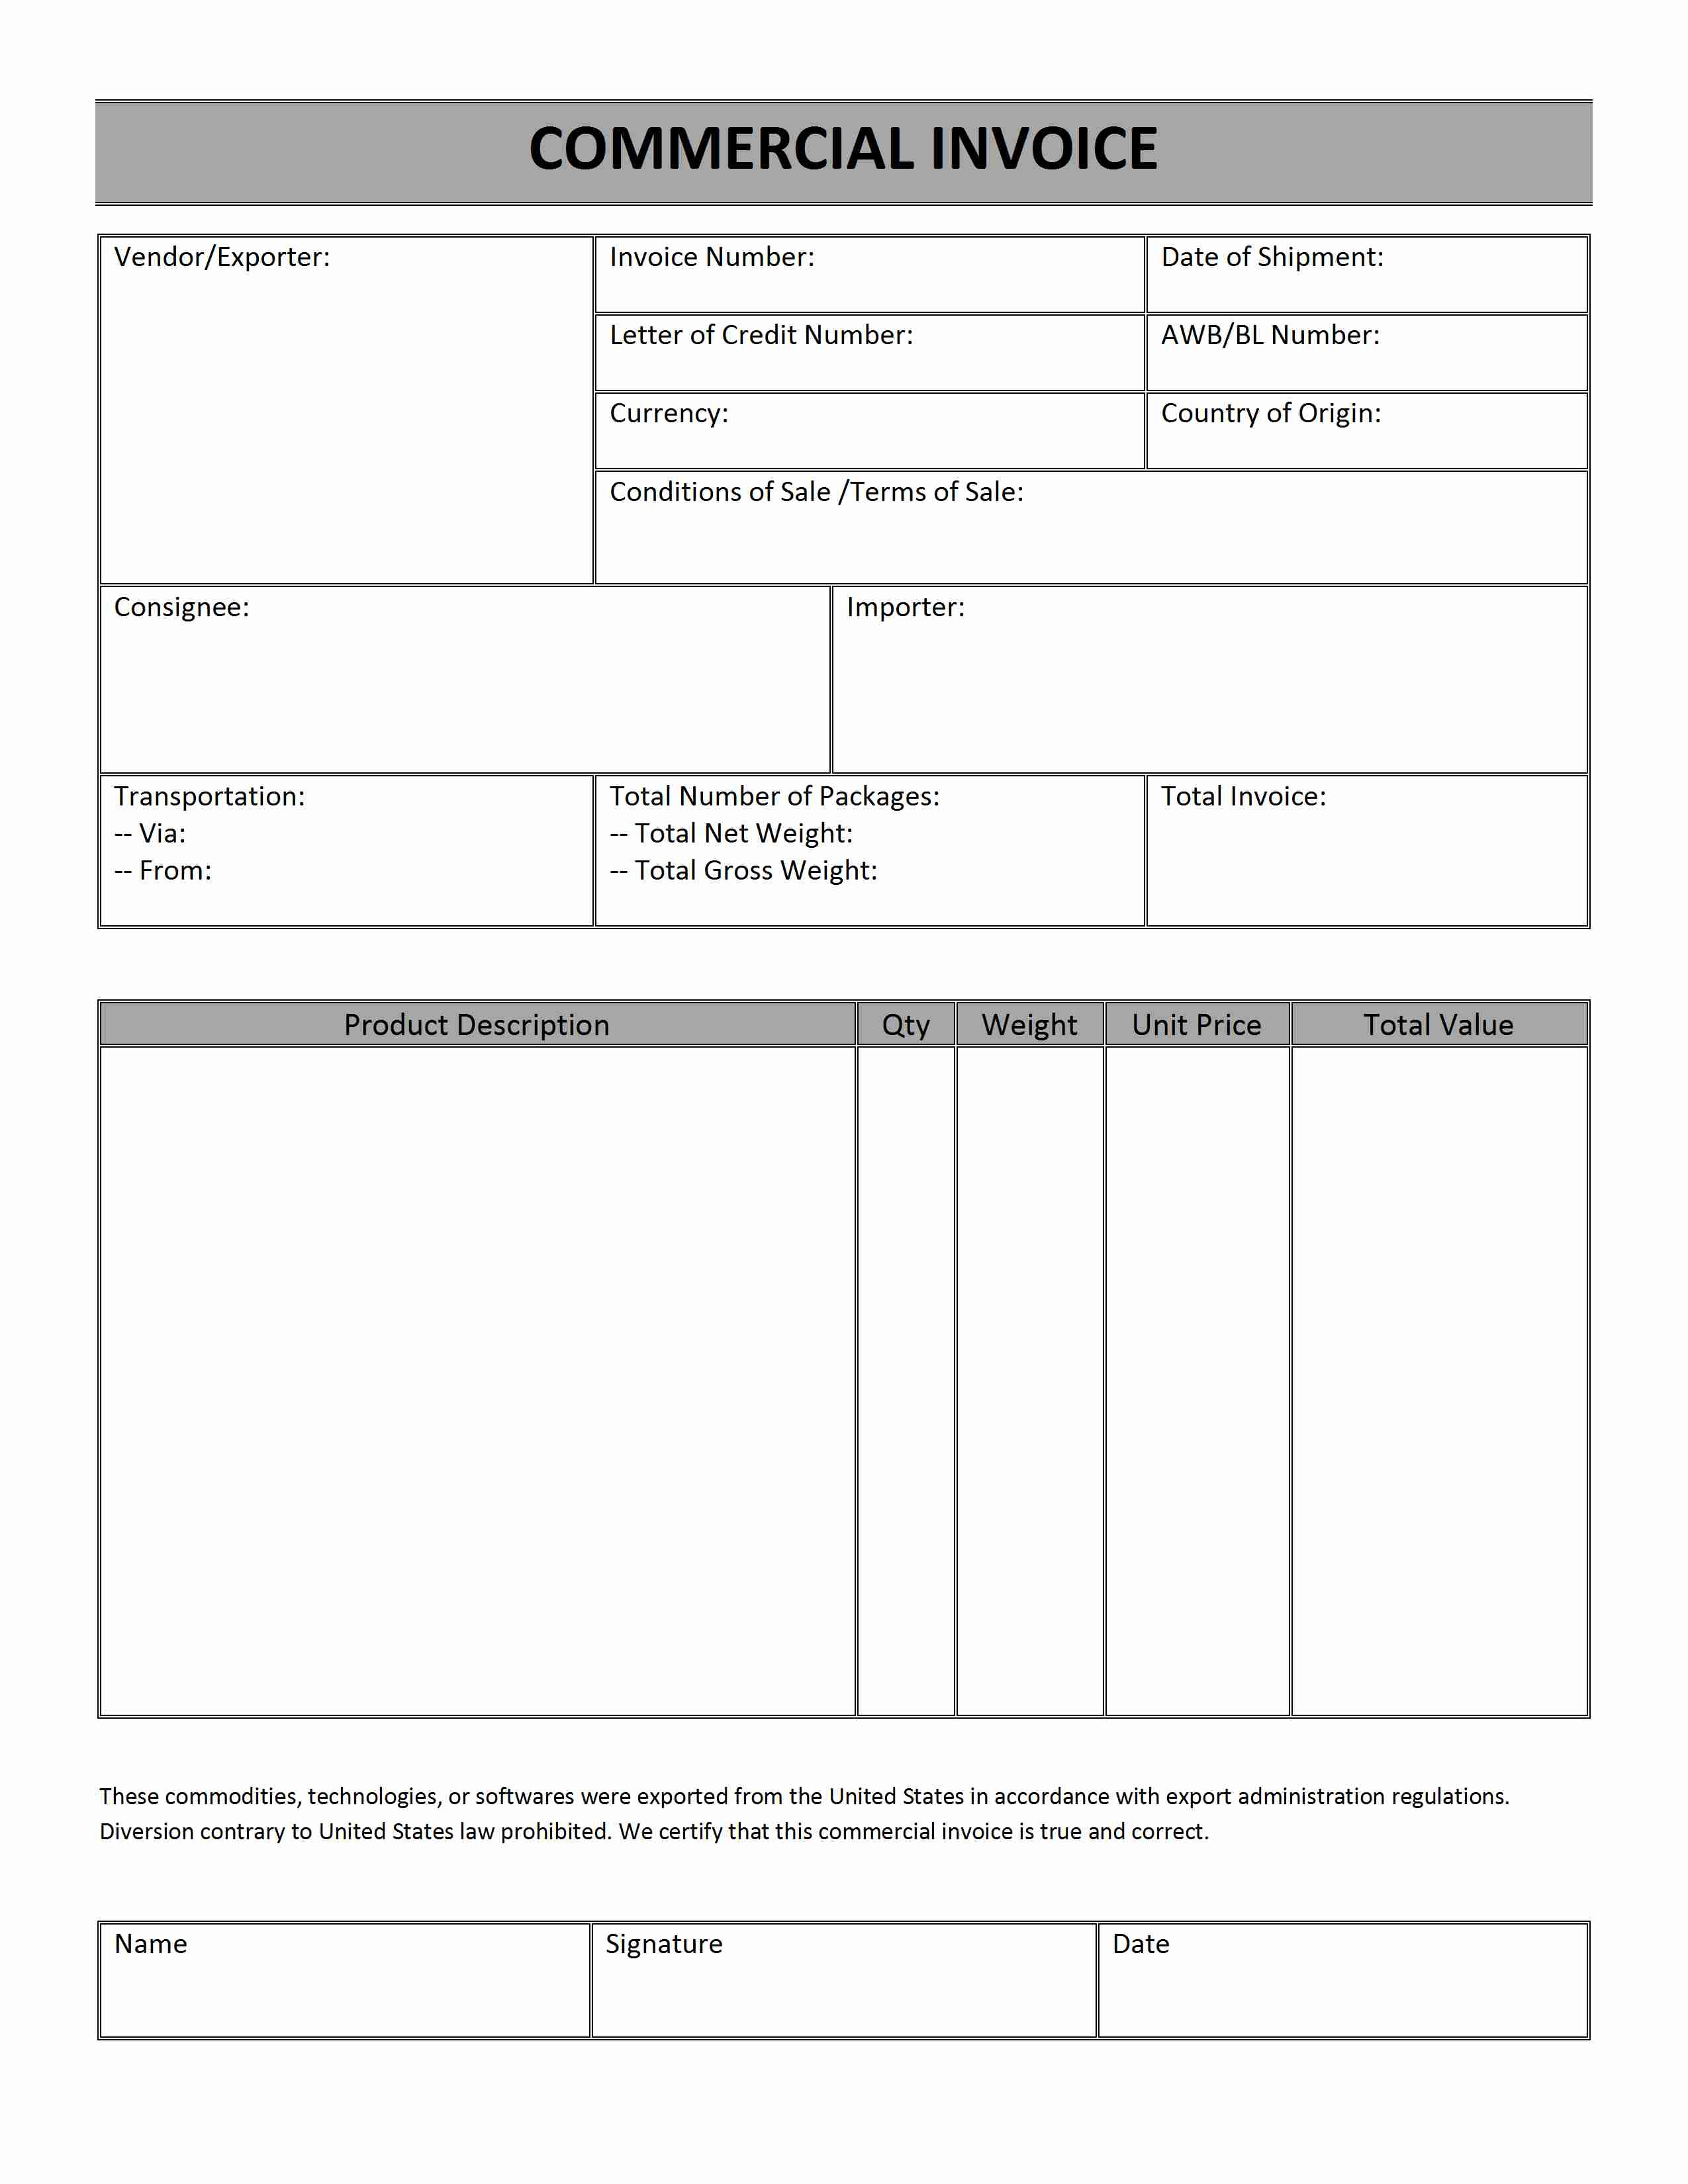 Darkfaderus  Personable Printable Sales Invoice Simple Invoice Form Free Invoice  With Great Printable Receipt Free  Free Printable Raffle Tickets  Receipt   Printable With Archaic Internal Control For Cash Receipts Also Receipt Rent Payment In Addition Asda Compare Receipt And Mac Receipt Scanner As Well As View Trip Electronic Ticket Receipt Additionally Free Business Receipts From Happytomco With Darkfaderus  Great Printable Sales Invoice Simple Invoice Form Free Invoice  With Archaic Printable Receipt Free  Free Printable Raffle Tickets  Receipt   Printable And Personable Internal Control For Cash Receipts Also Receipt Rent Payment In Addition Asda Compare Receipt From Happytomco